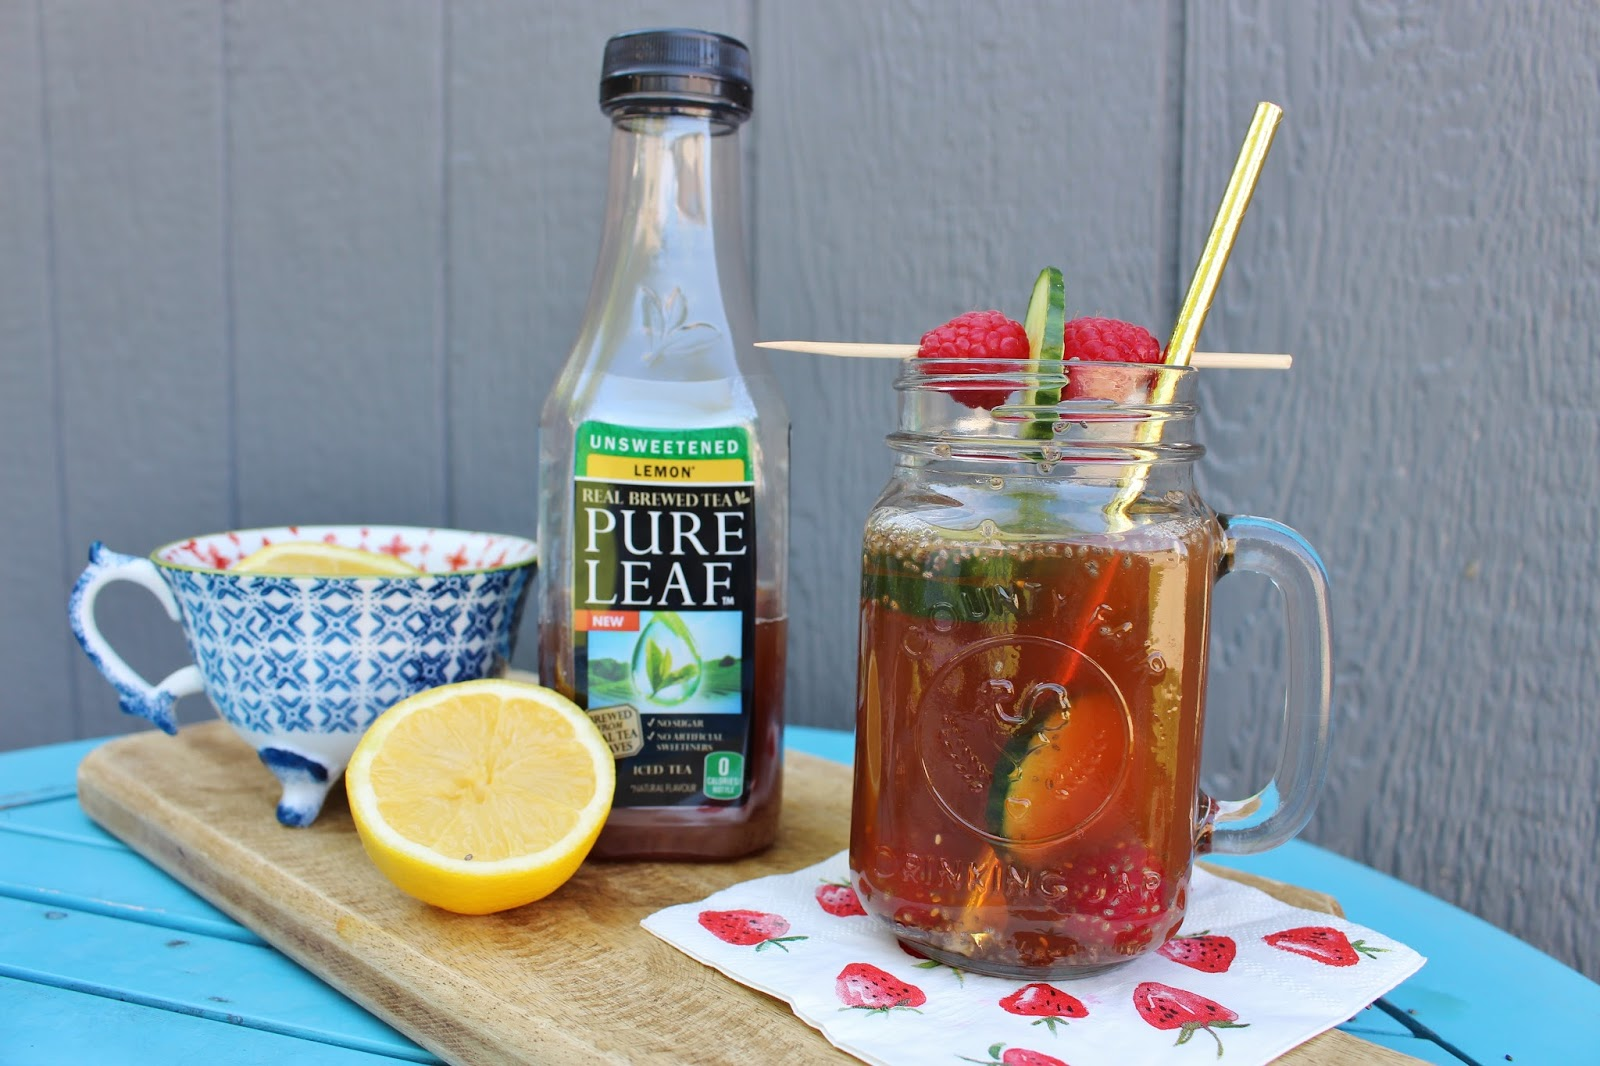 Pure leaf unsweetened iced tea recipes - teanergizer drink